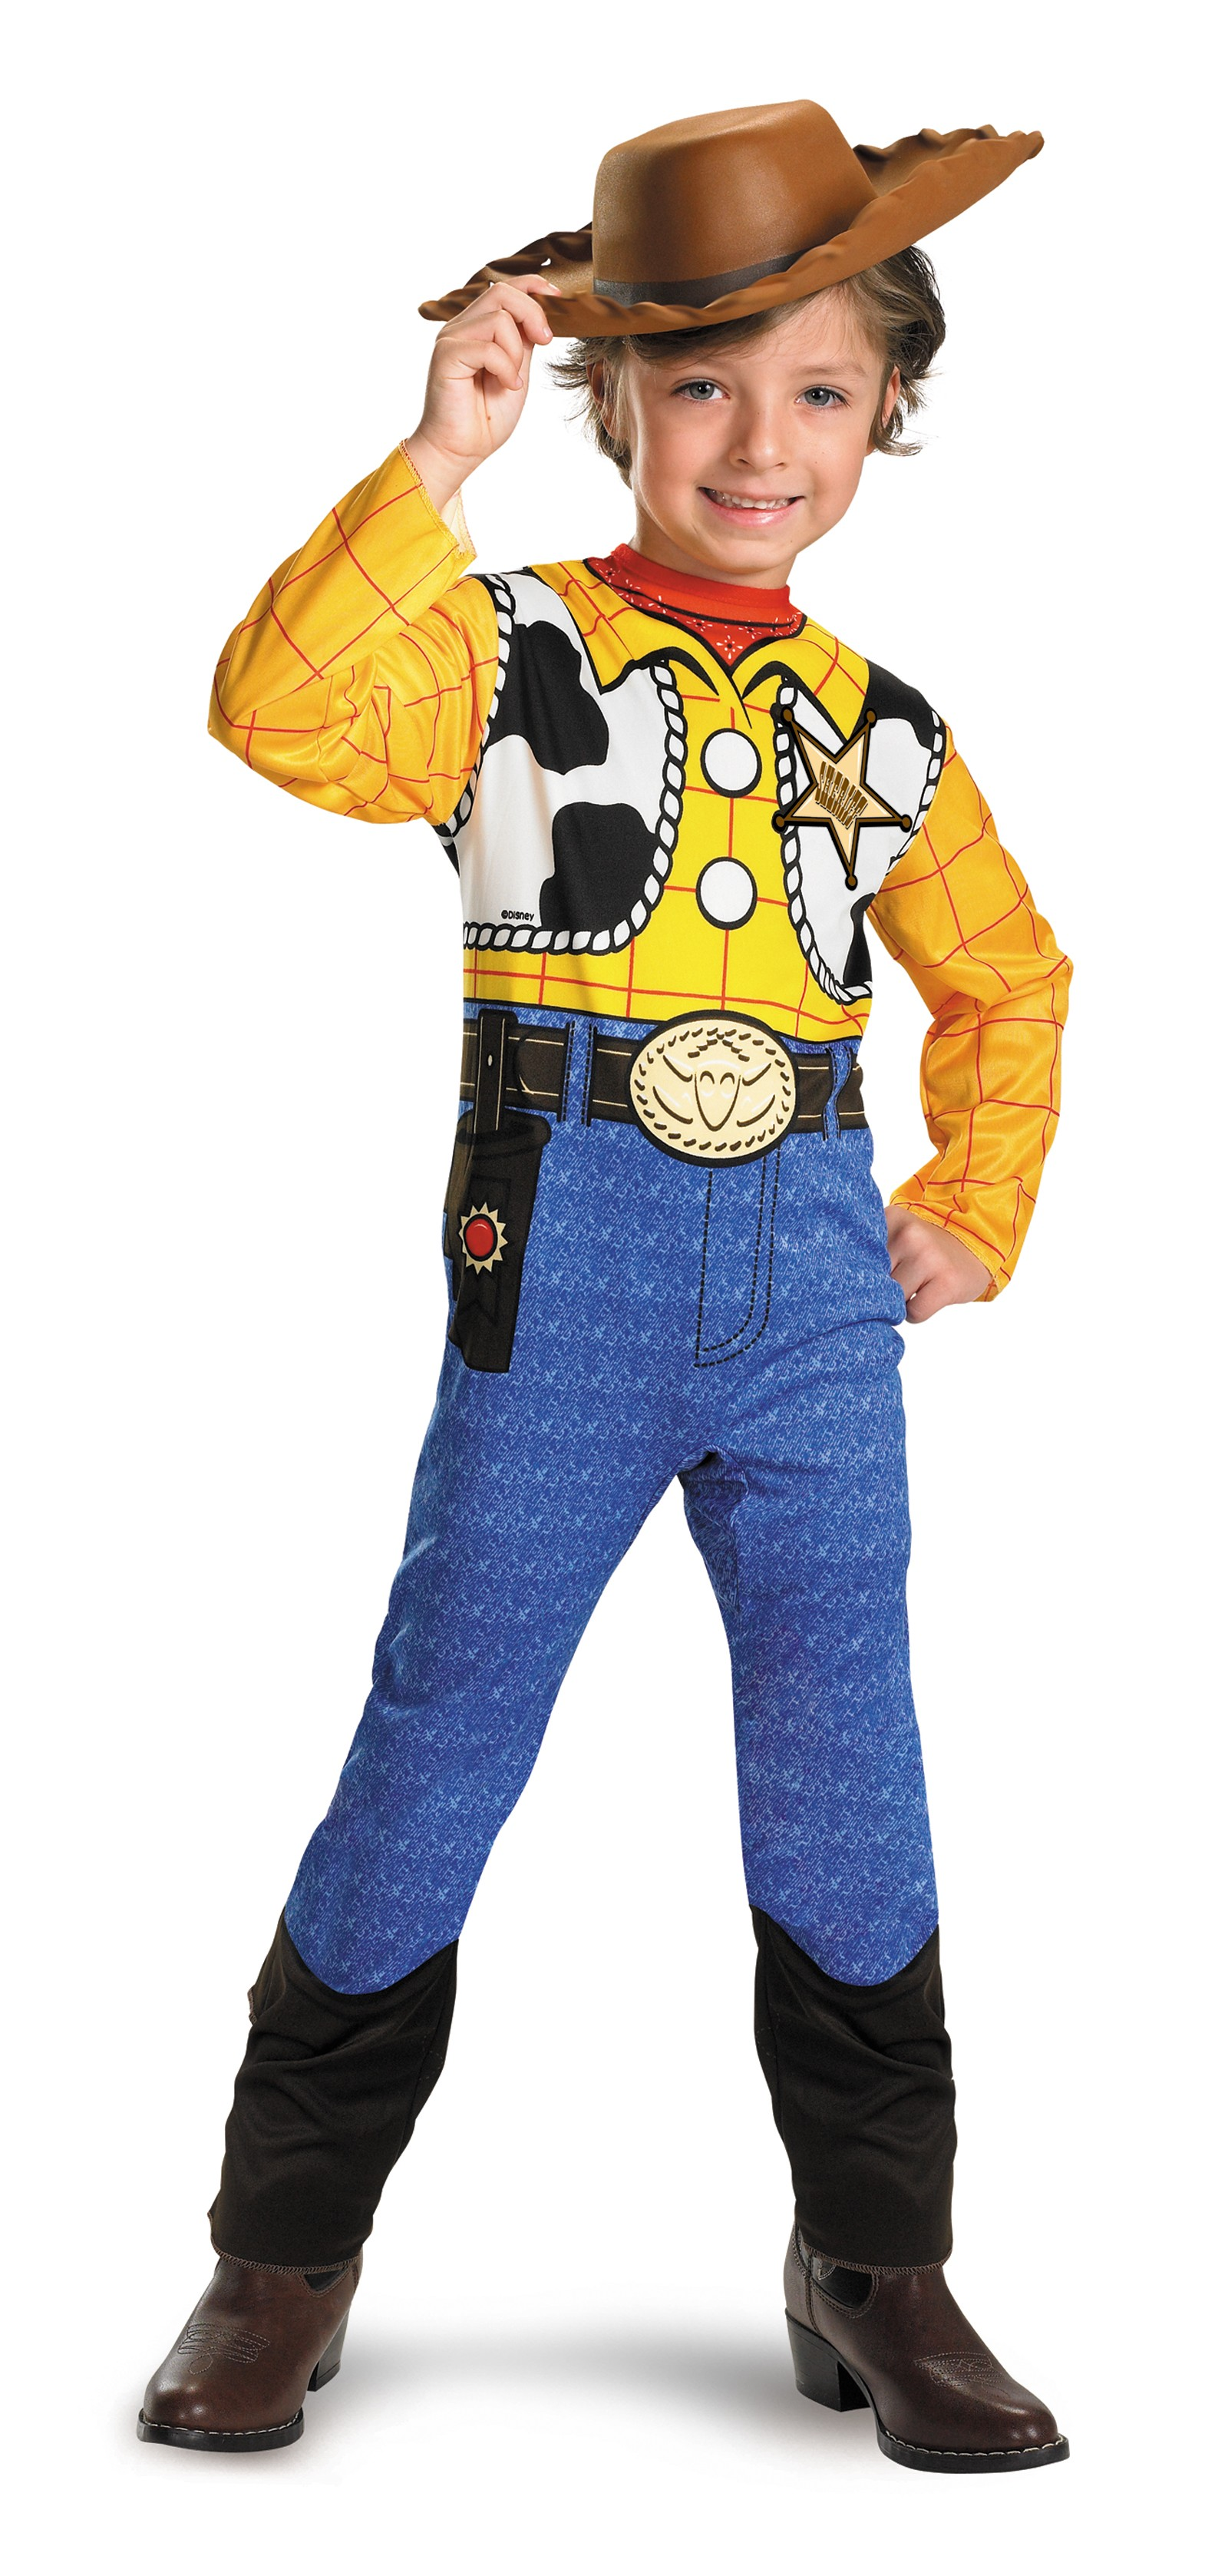 Toy Story 4 Halloween Costumes.Toy Story Woody Classic Toddler Child Costume Costumes Com Au